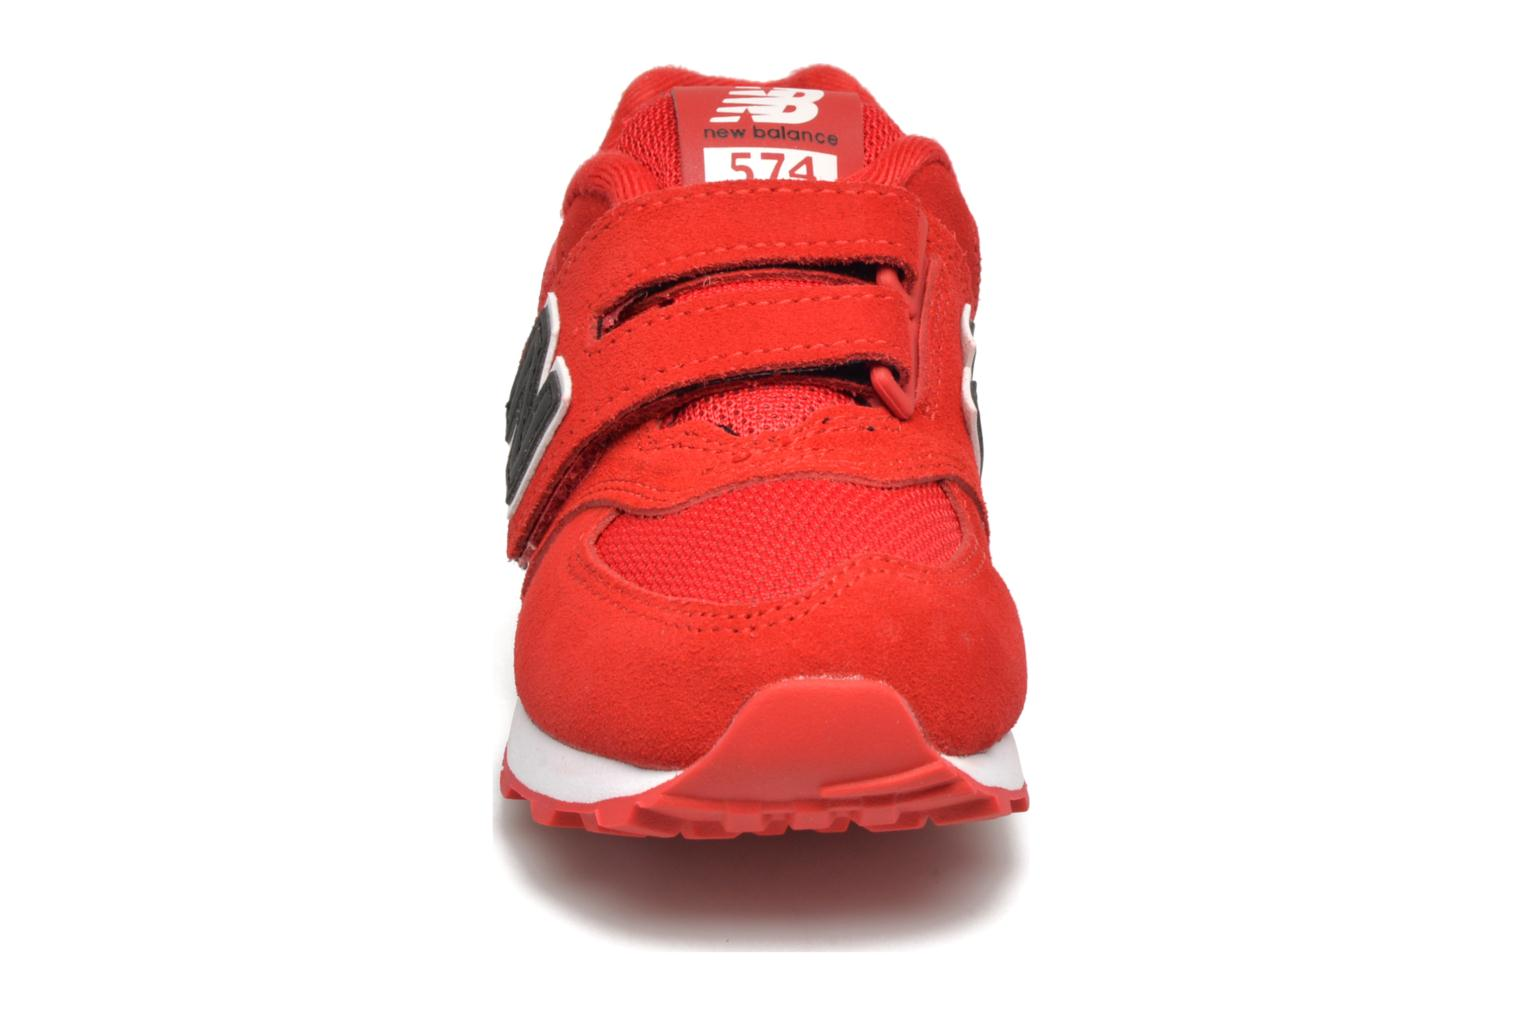 Kv574 CXI CXY Red/Black